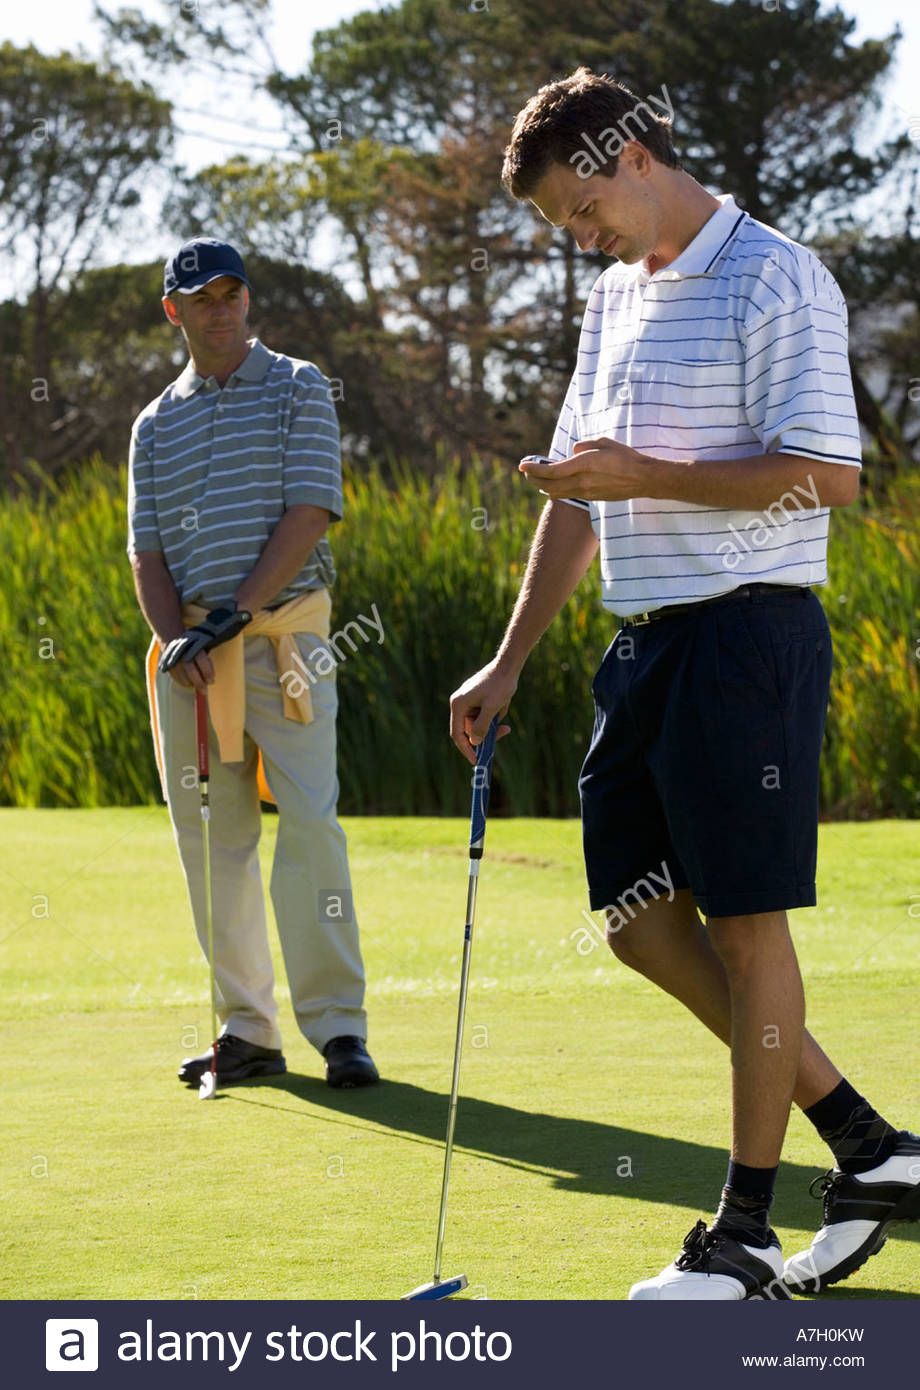 Interruption to the game of golf - Stock Image